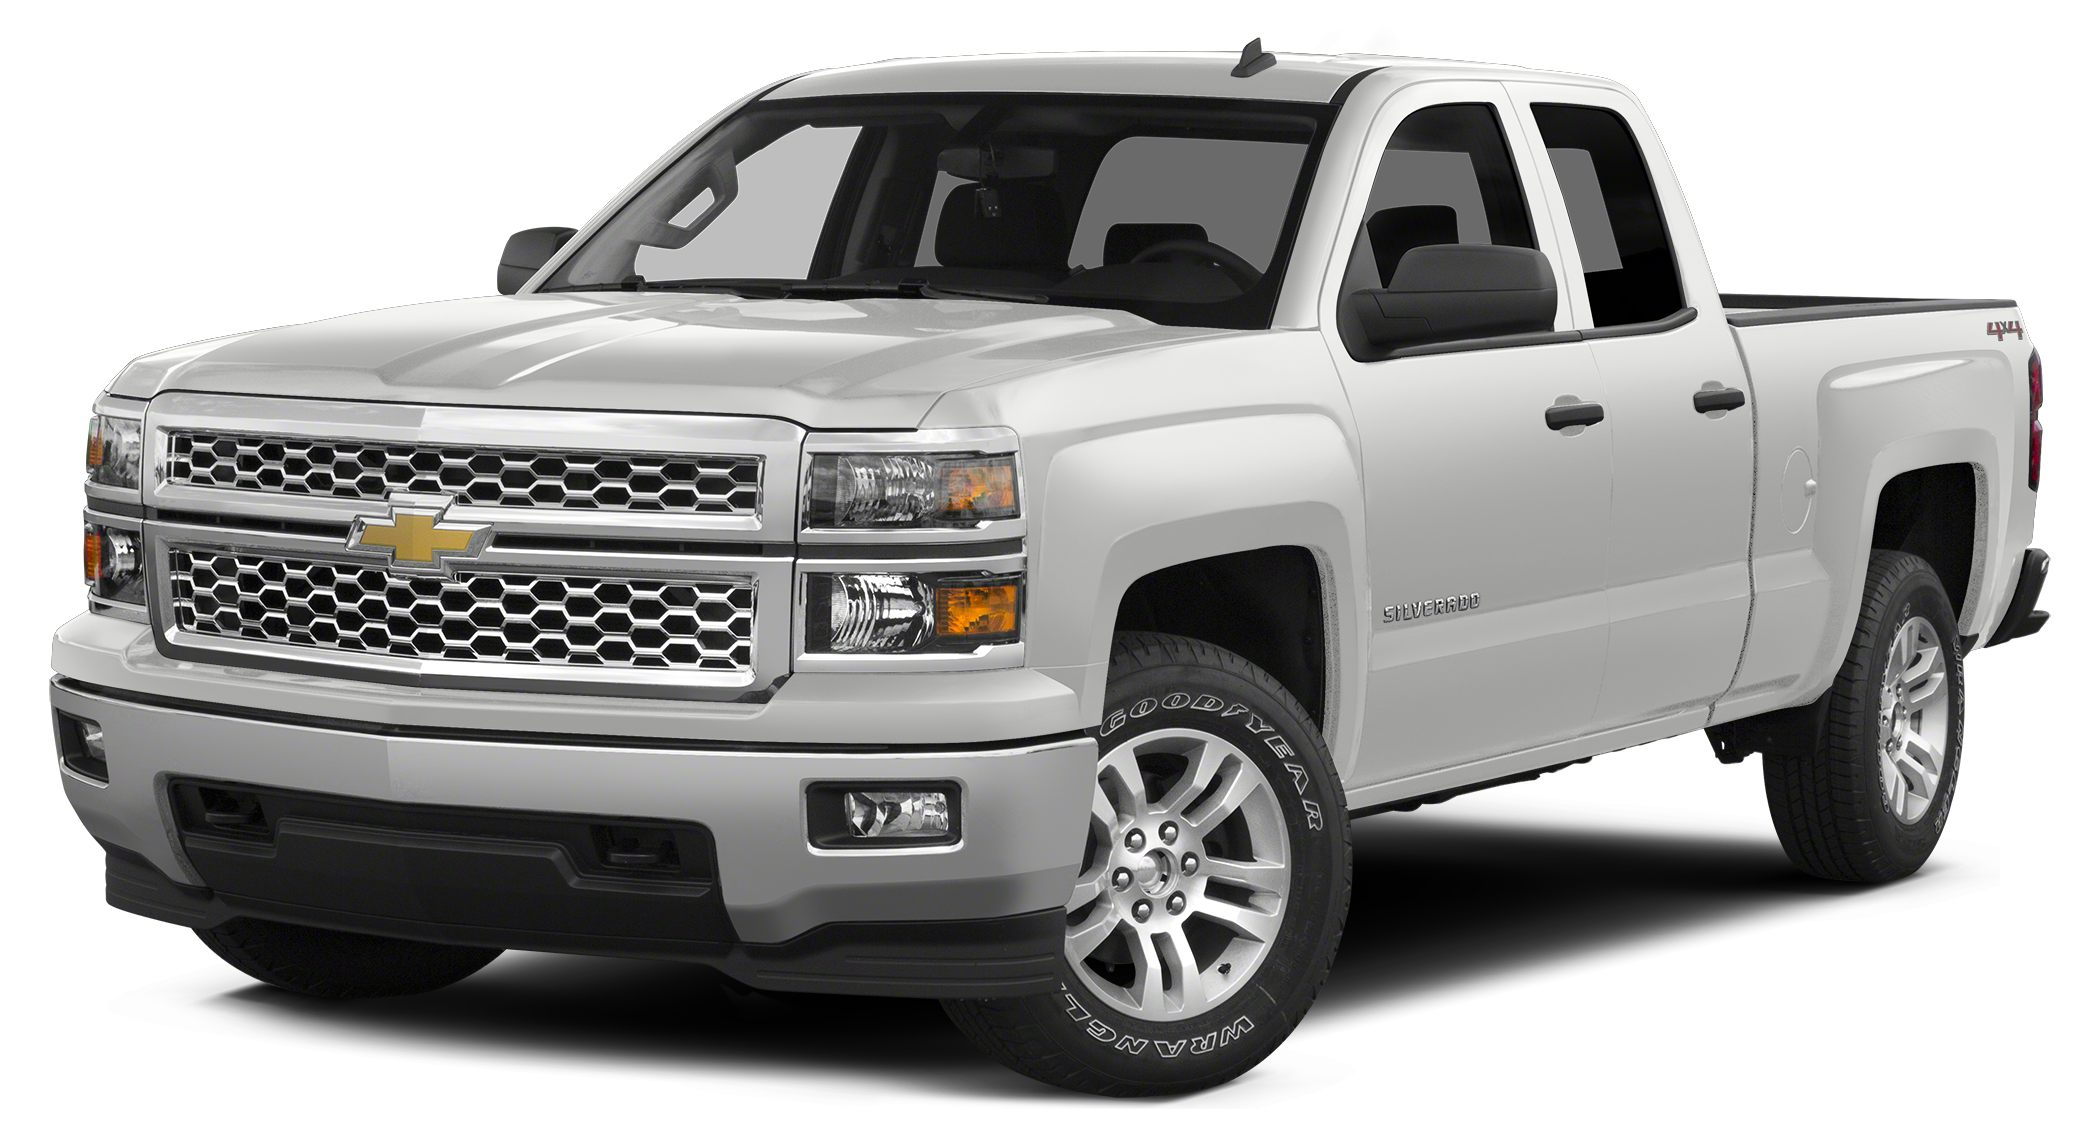 2014 Chevrolet Silverado 1500 WT Stop Clicking Now Call Kraig at 866-372-1761 I wont waste your